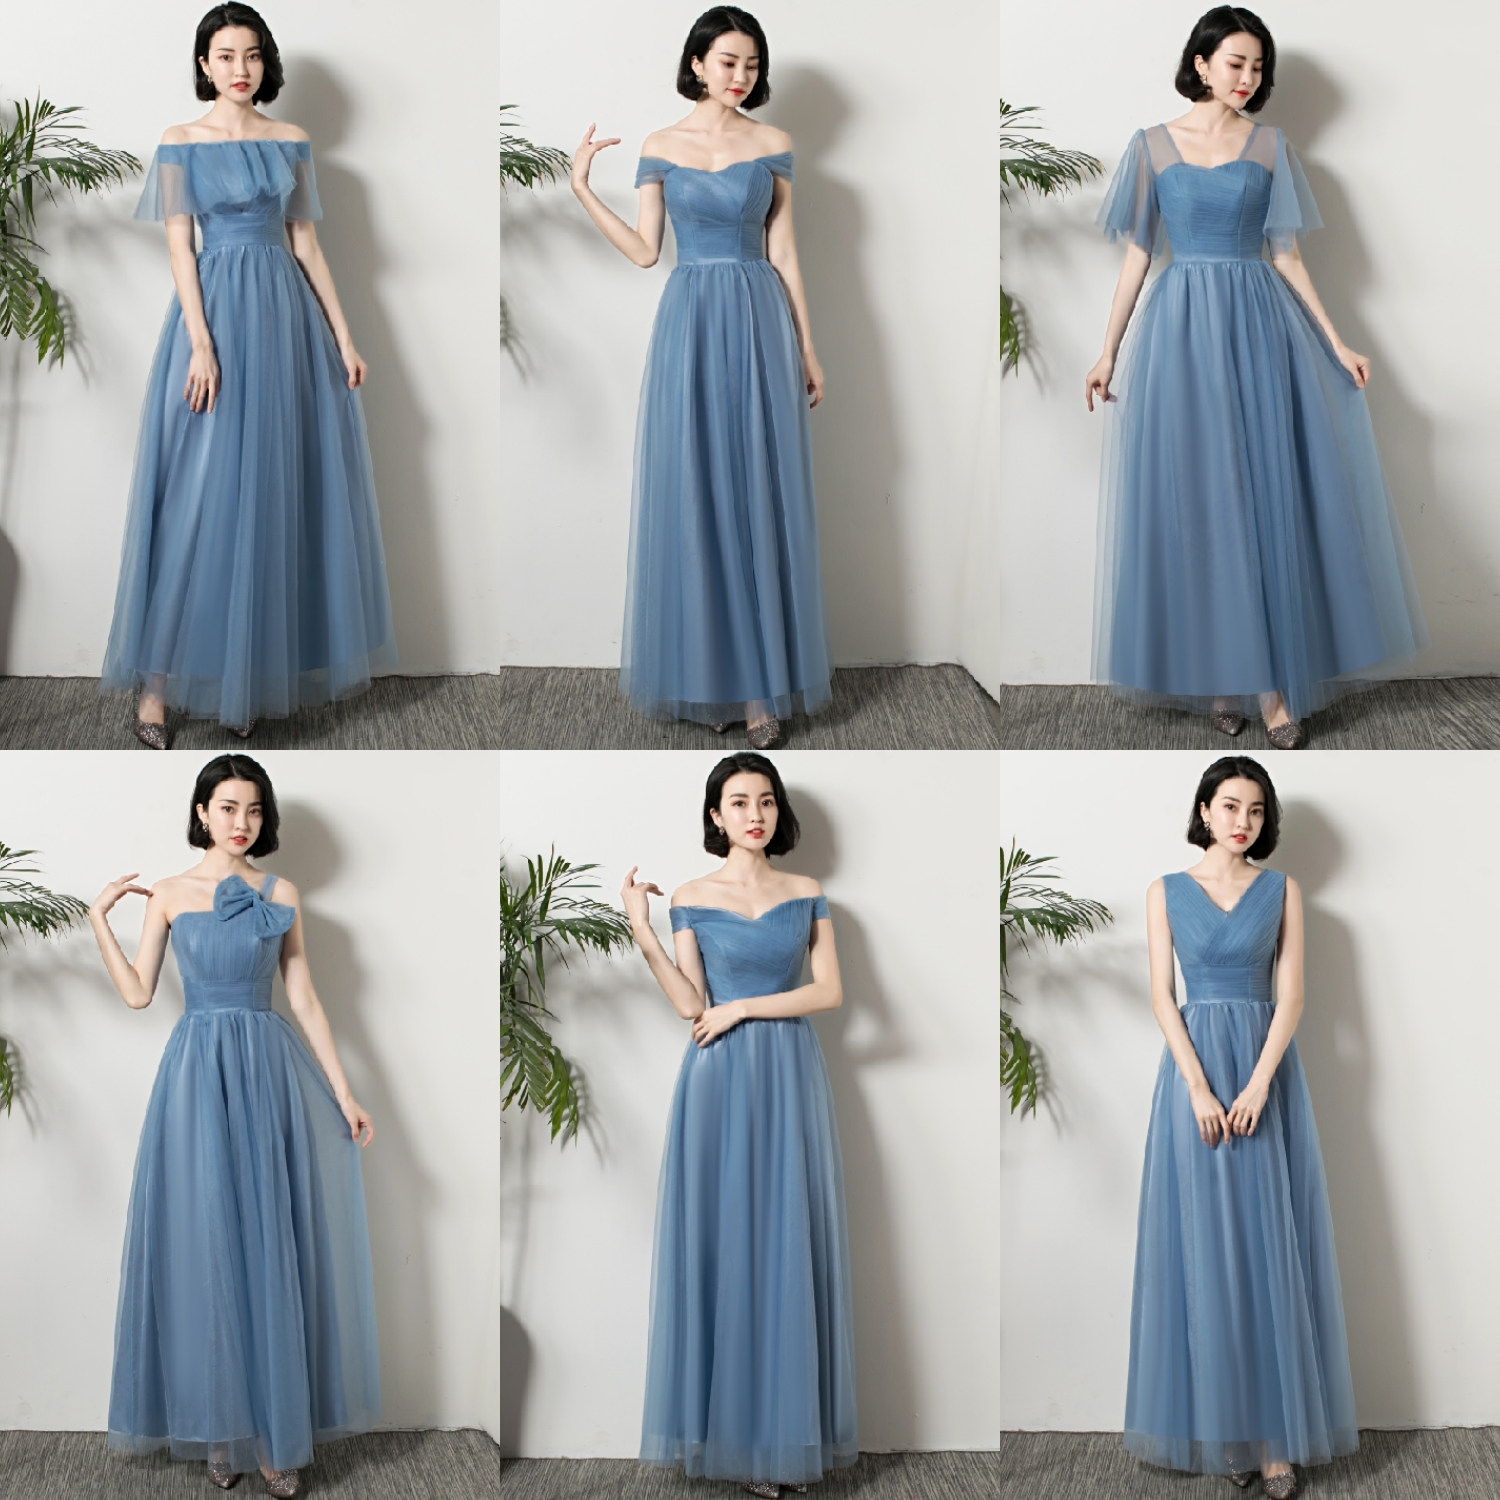 Gray Blue Bridesmaid Dresses Long Plus Size Guest Wedding Party Elegant Tulle A-Line New Years Eve Dress Sexy Princes Prom